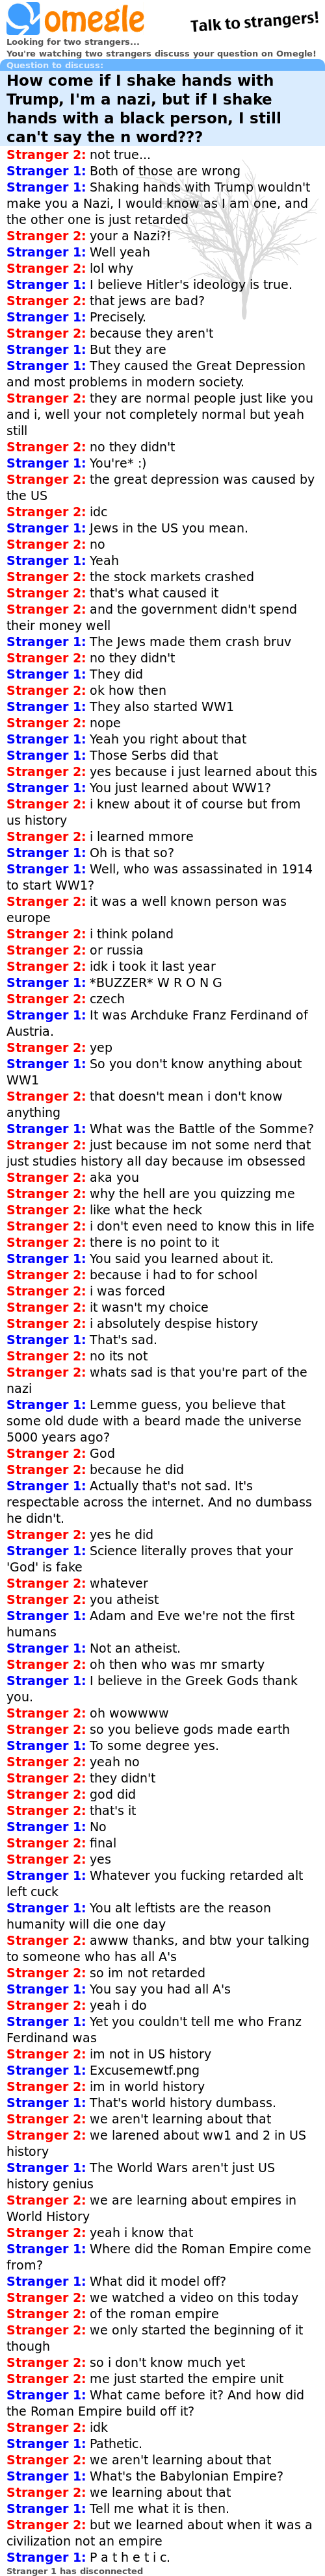 Omegle chat log